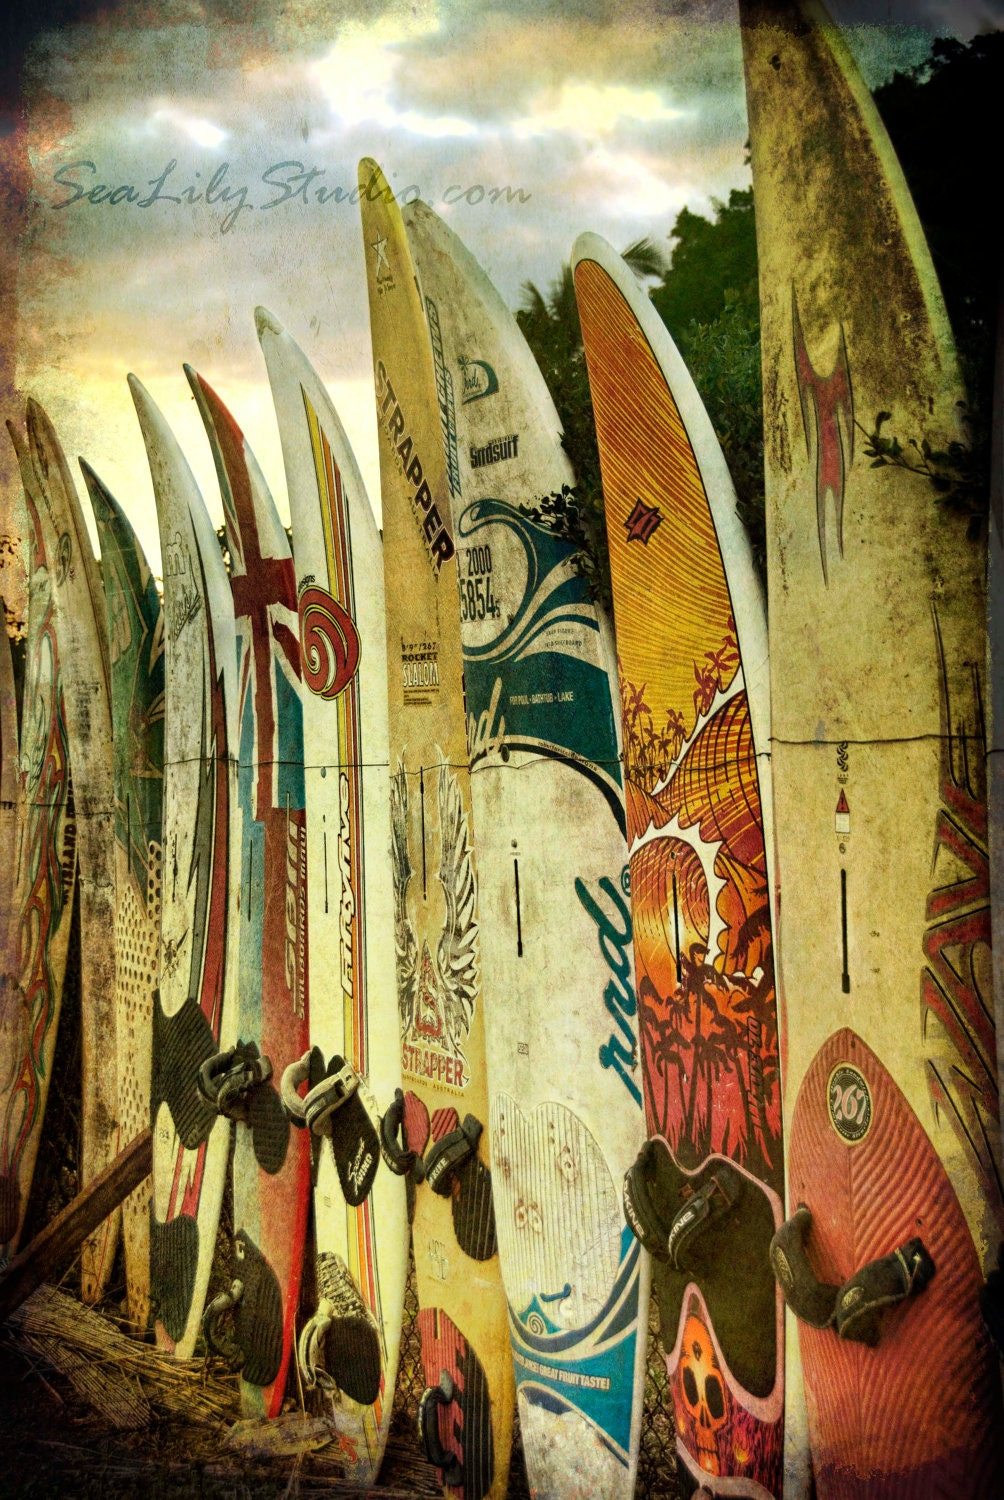 Surfboard photo 24x36 : surf photography beach surfer print